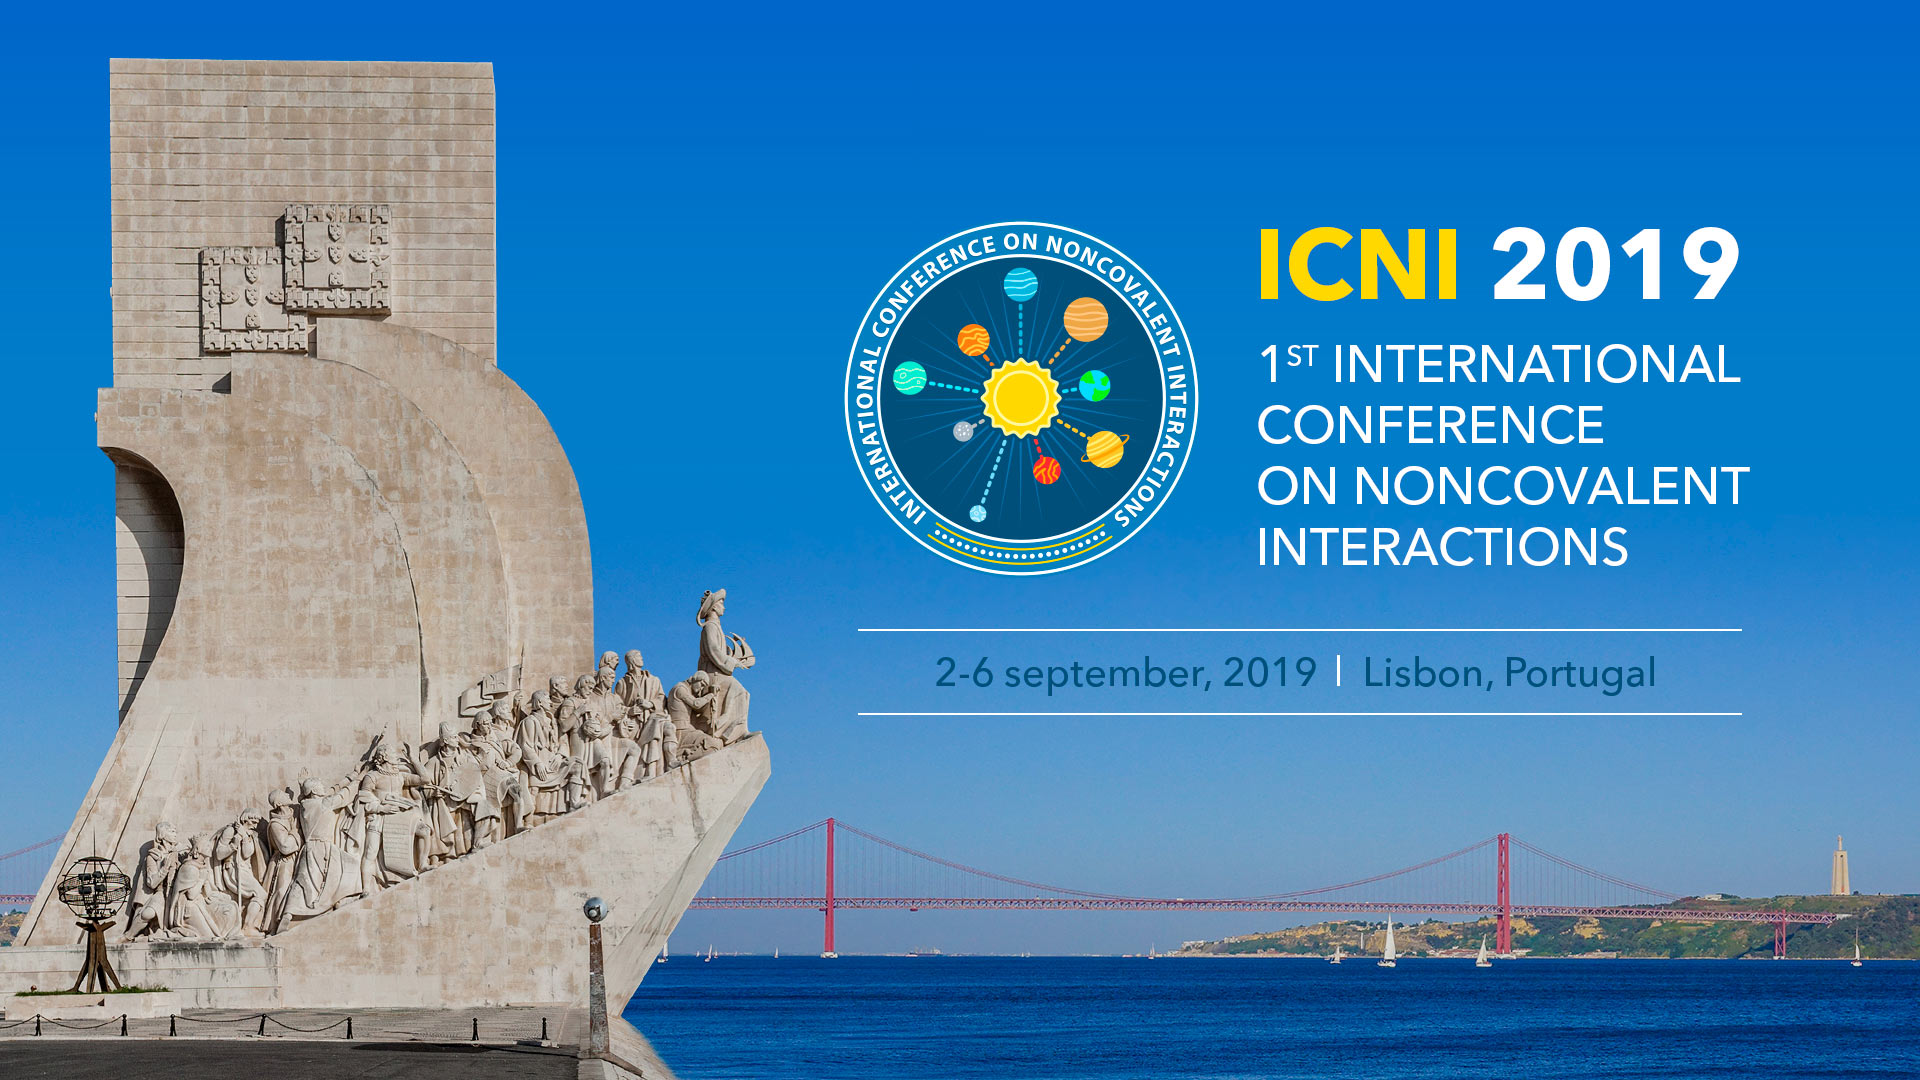 1st International Conference on Noncovalent Interactions (ICNI 2019)